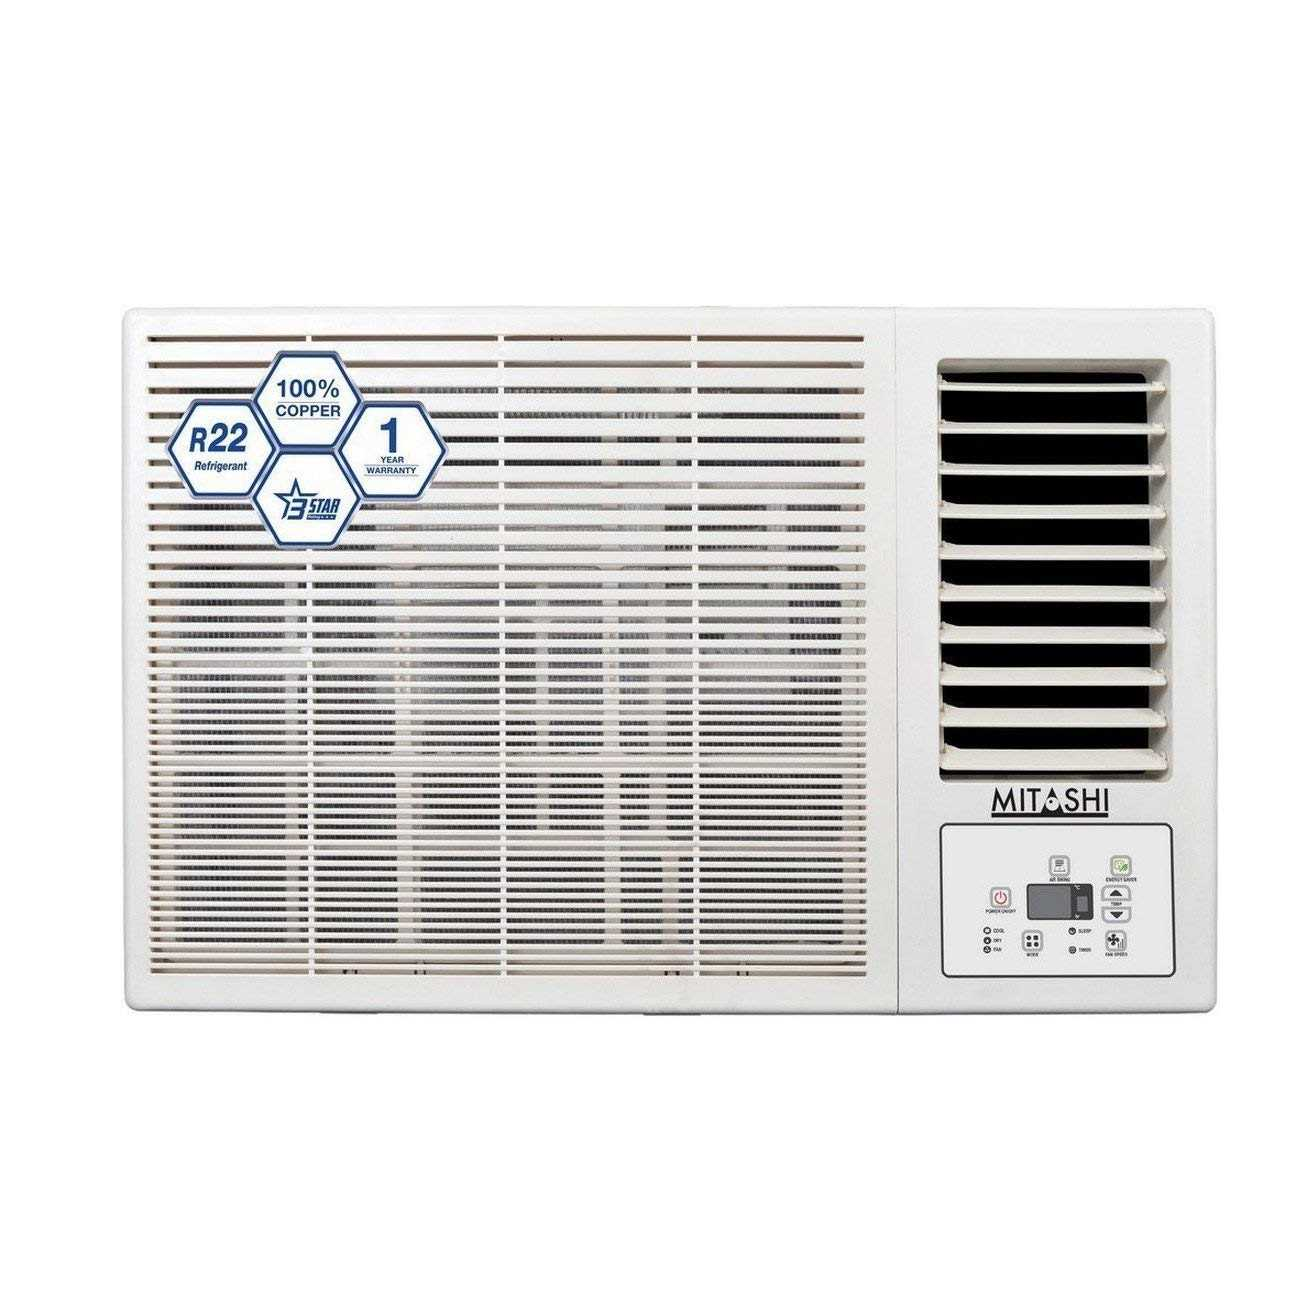 Mitashi MiWAC153v35 1.5 Ton 3 Star Window AC